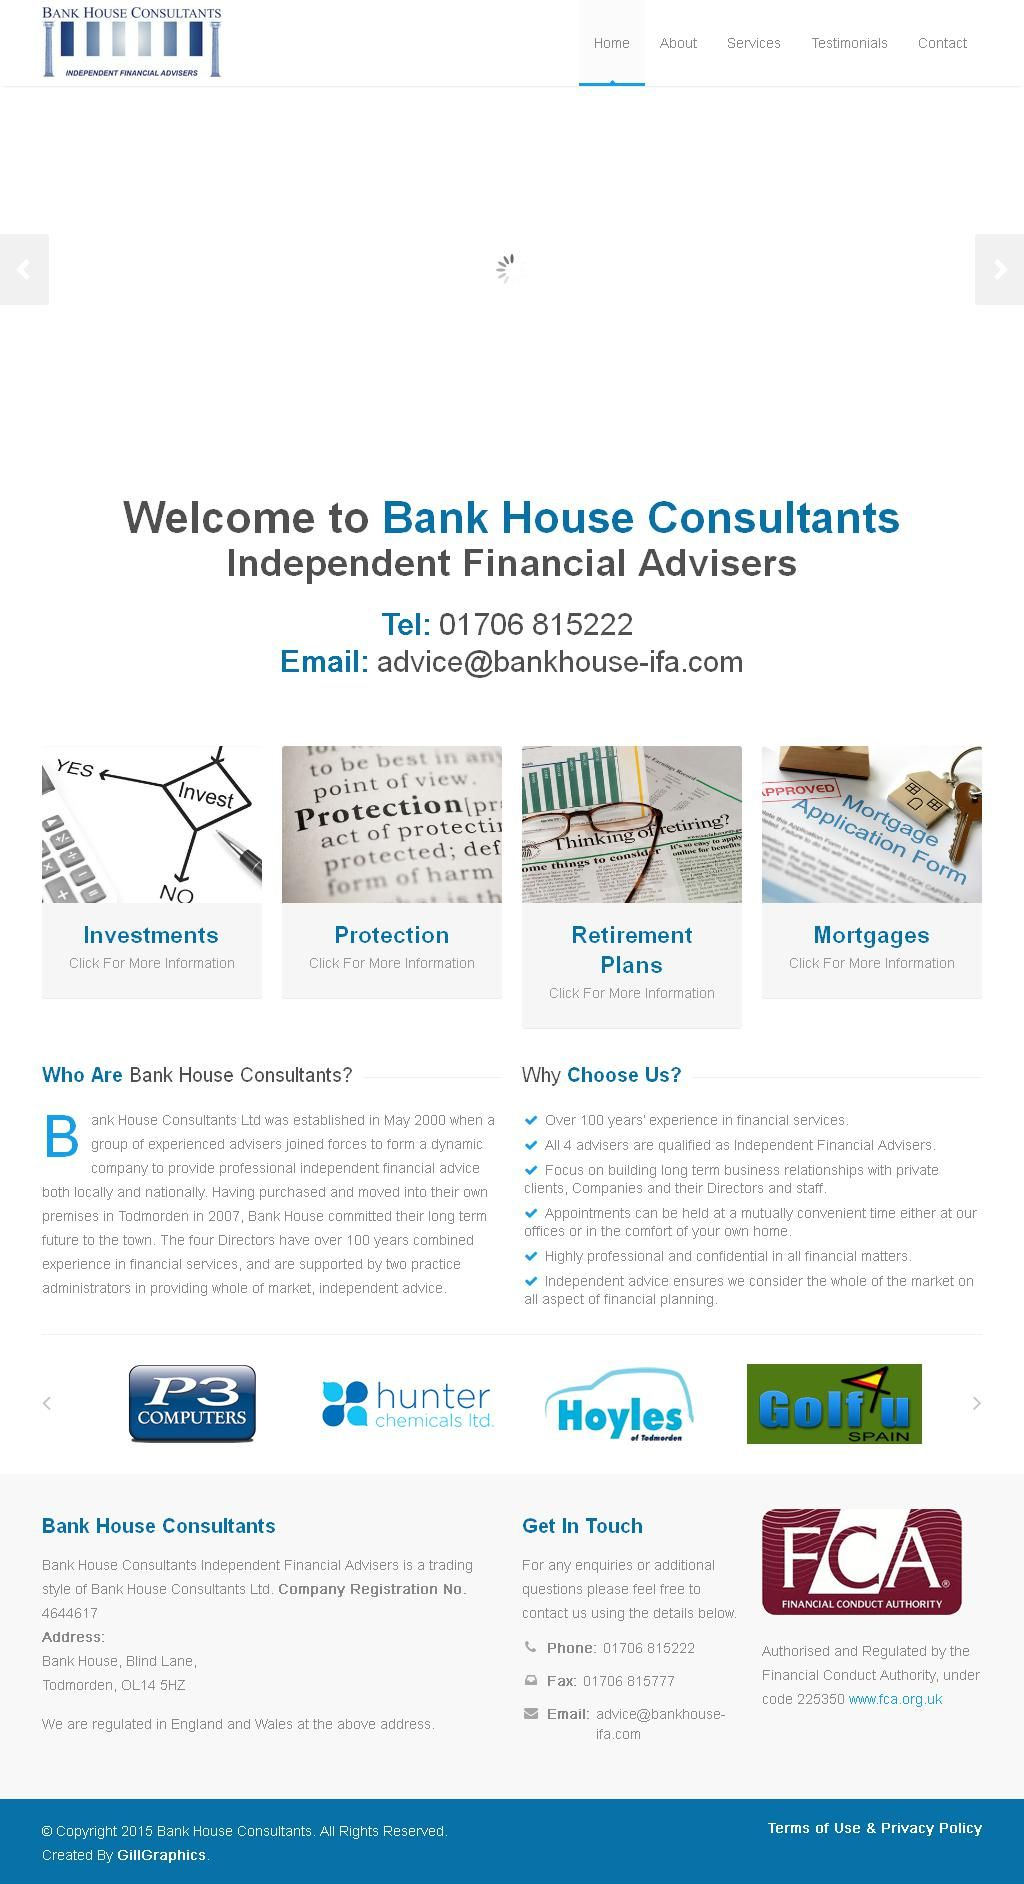 Bank House Consultants Financial Advisers (Independents